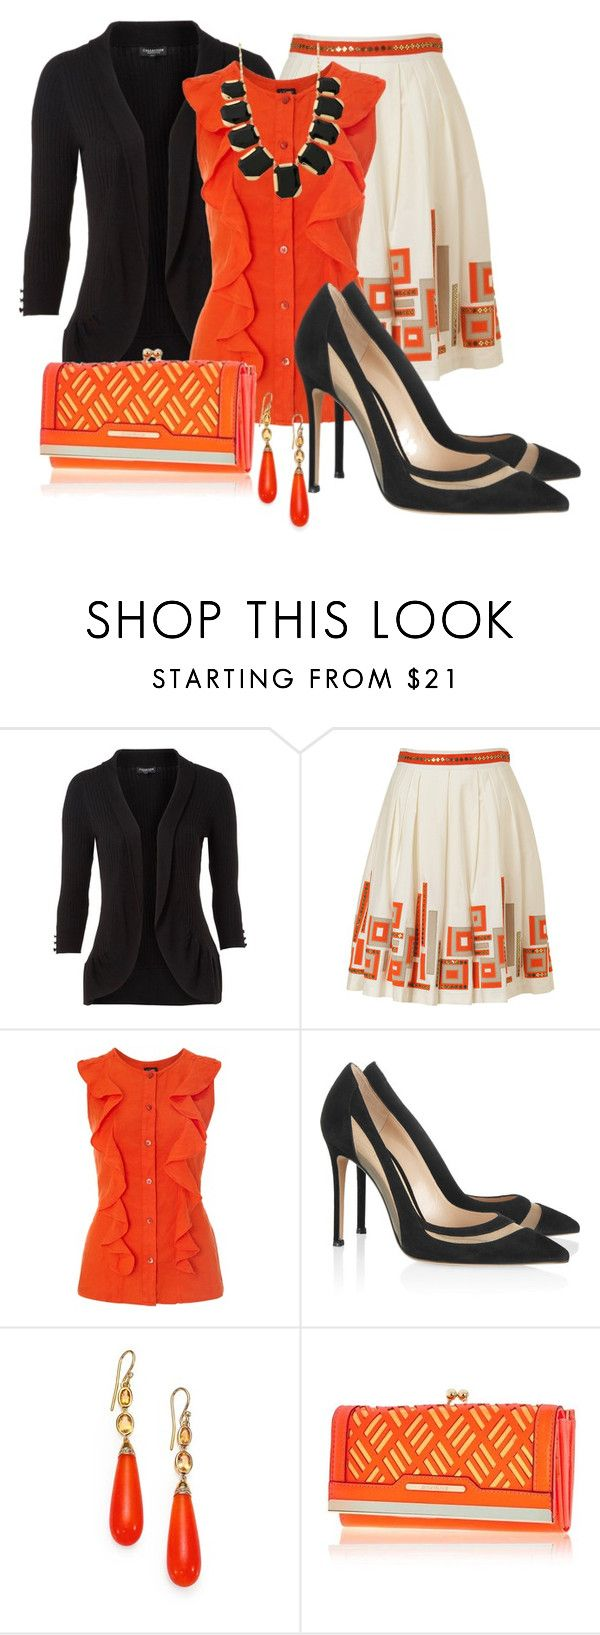 """Black & Orange"" by justbeccuz ❤ liked on Polyvore featuring Petite Collection, Milly, Armani Jeans, Gianvito Rossi, MIJA, River Island and Kate Spade"